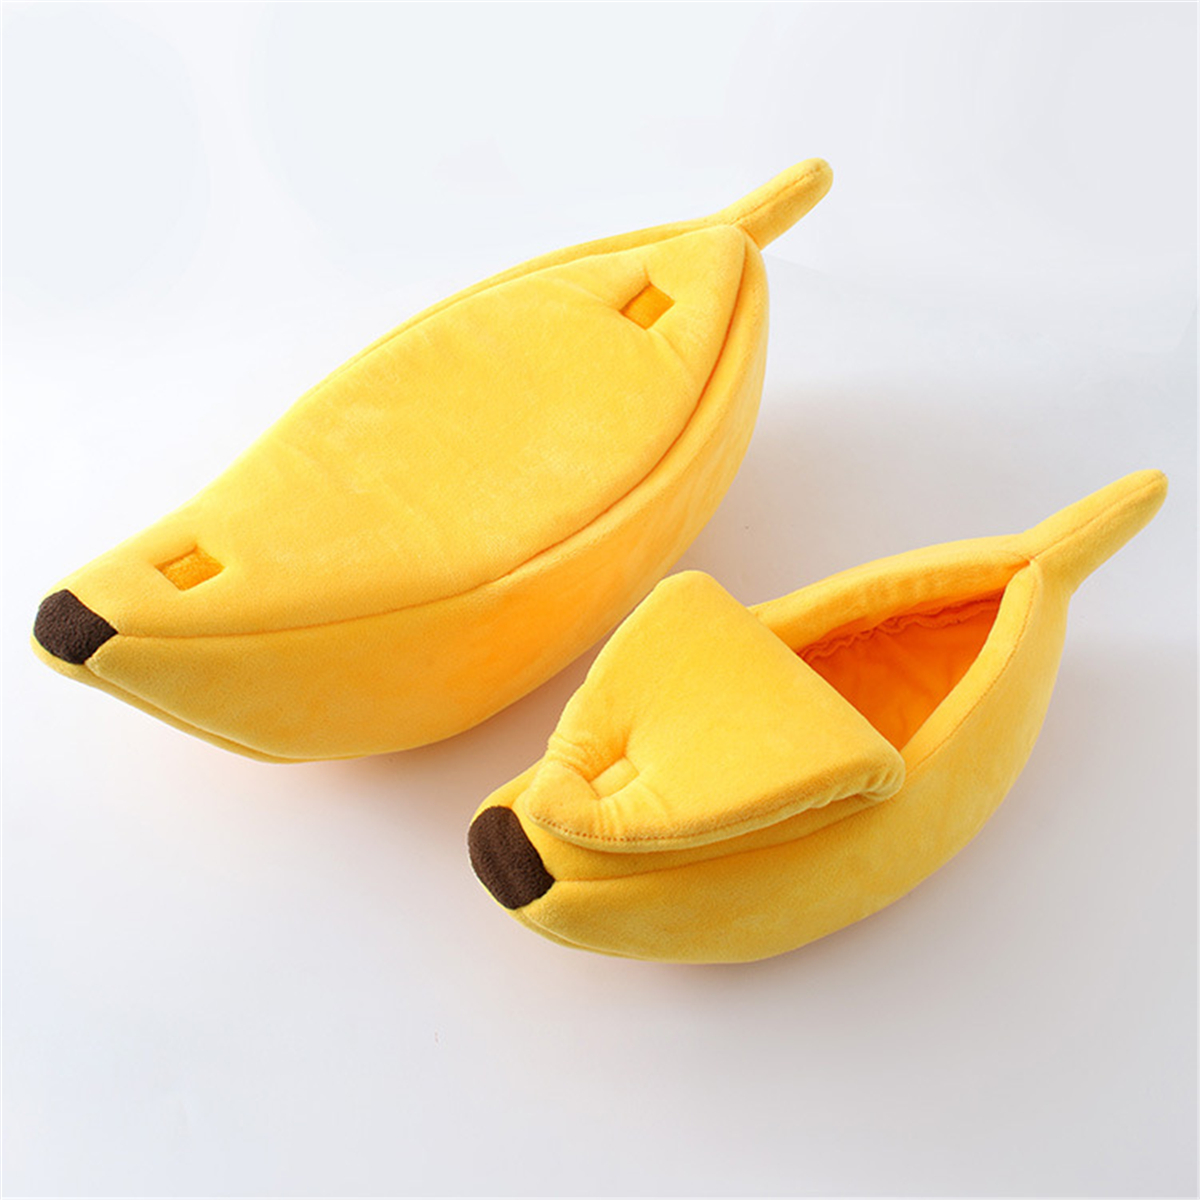 Lovely Banana Cat Bed 2